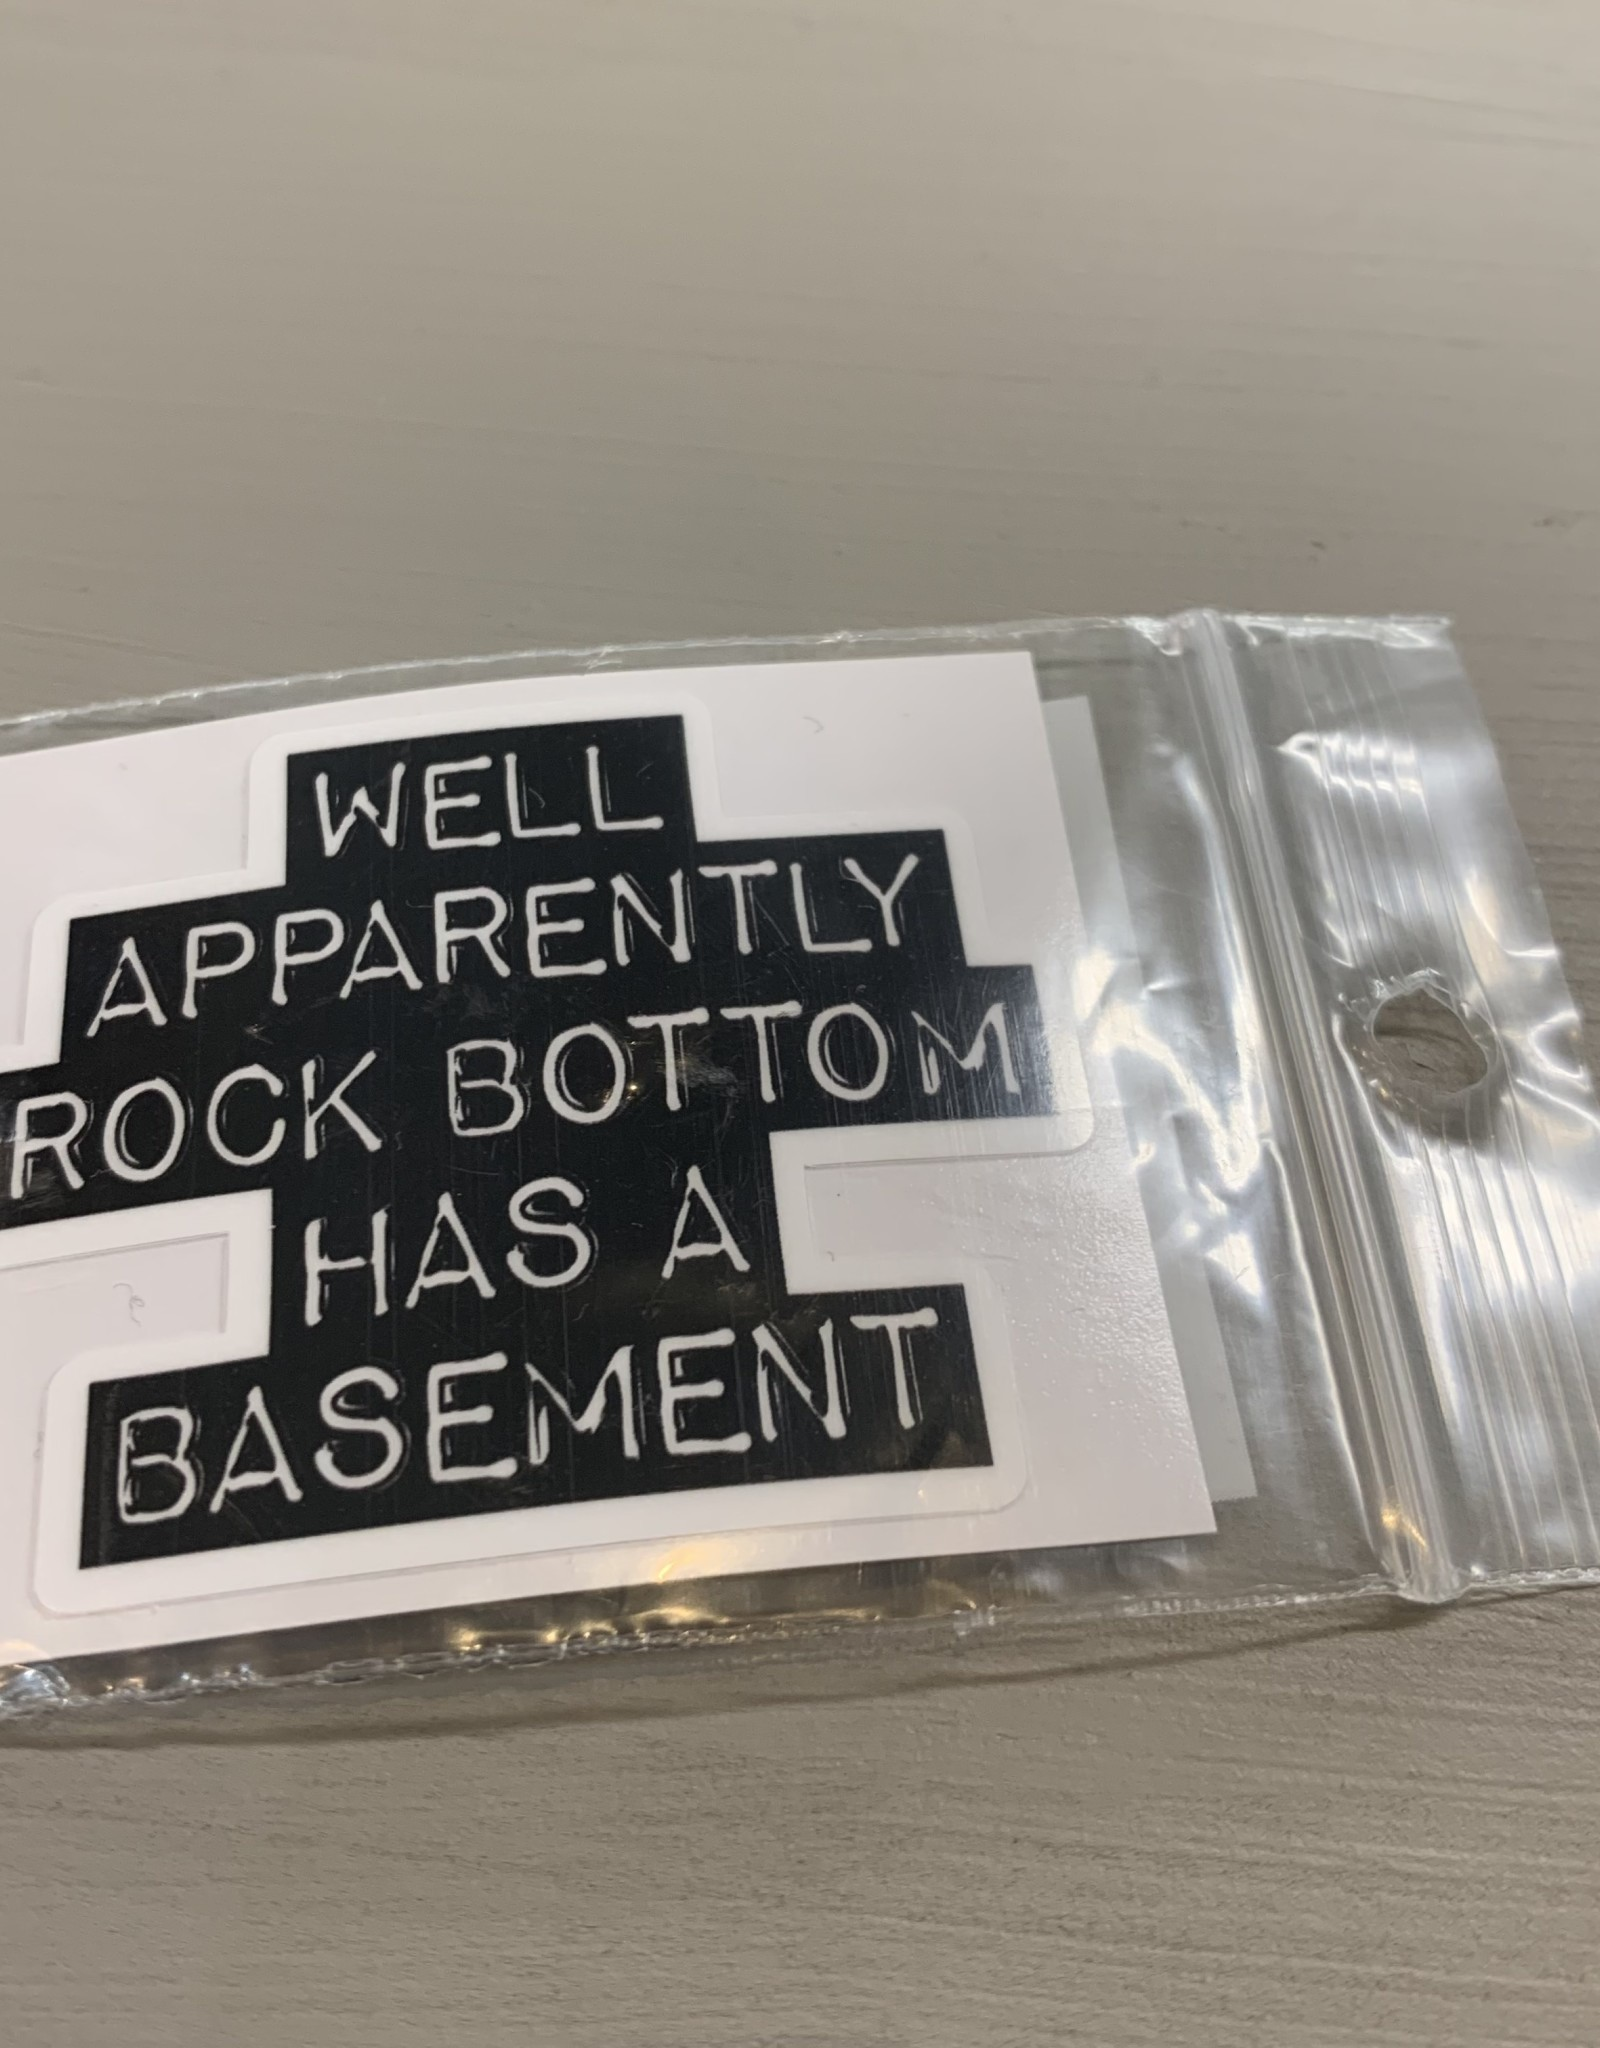 ROCK BOTTOM BASEMENT STICKER (CELL)